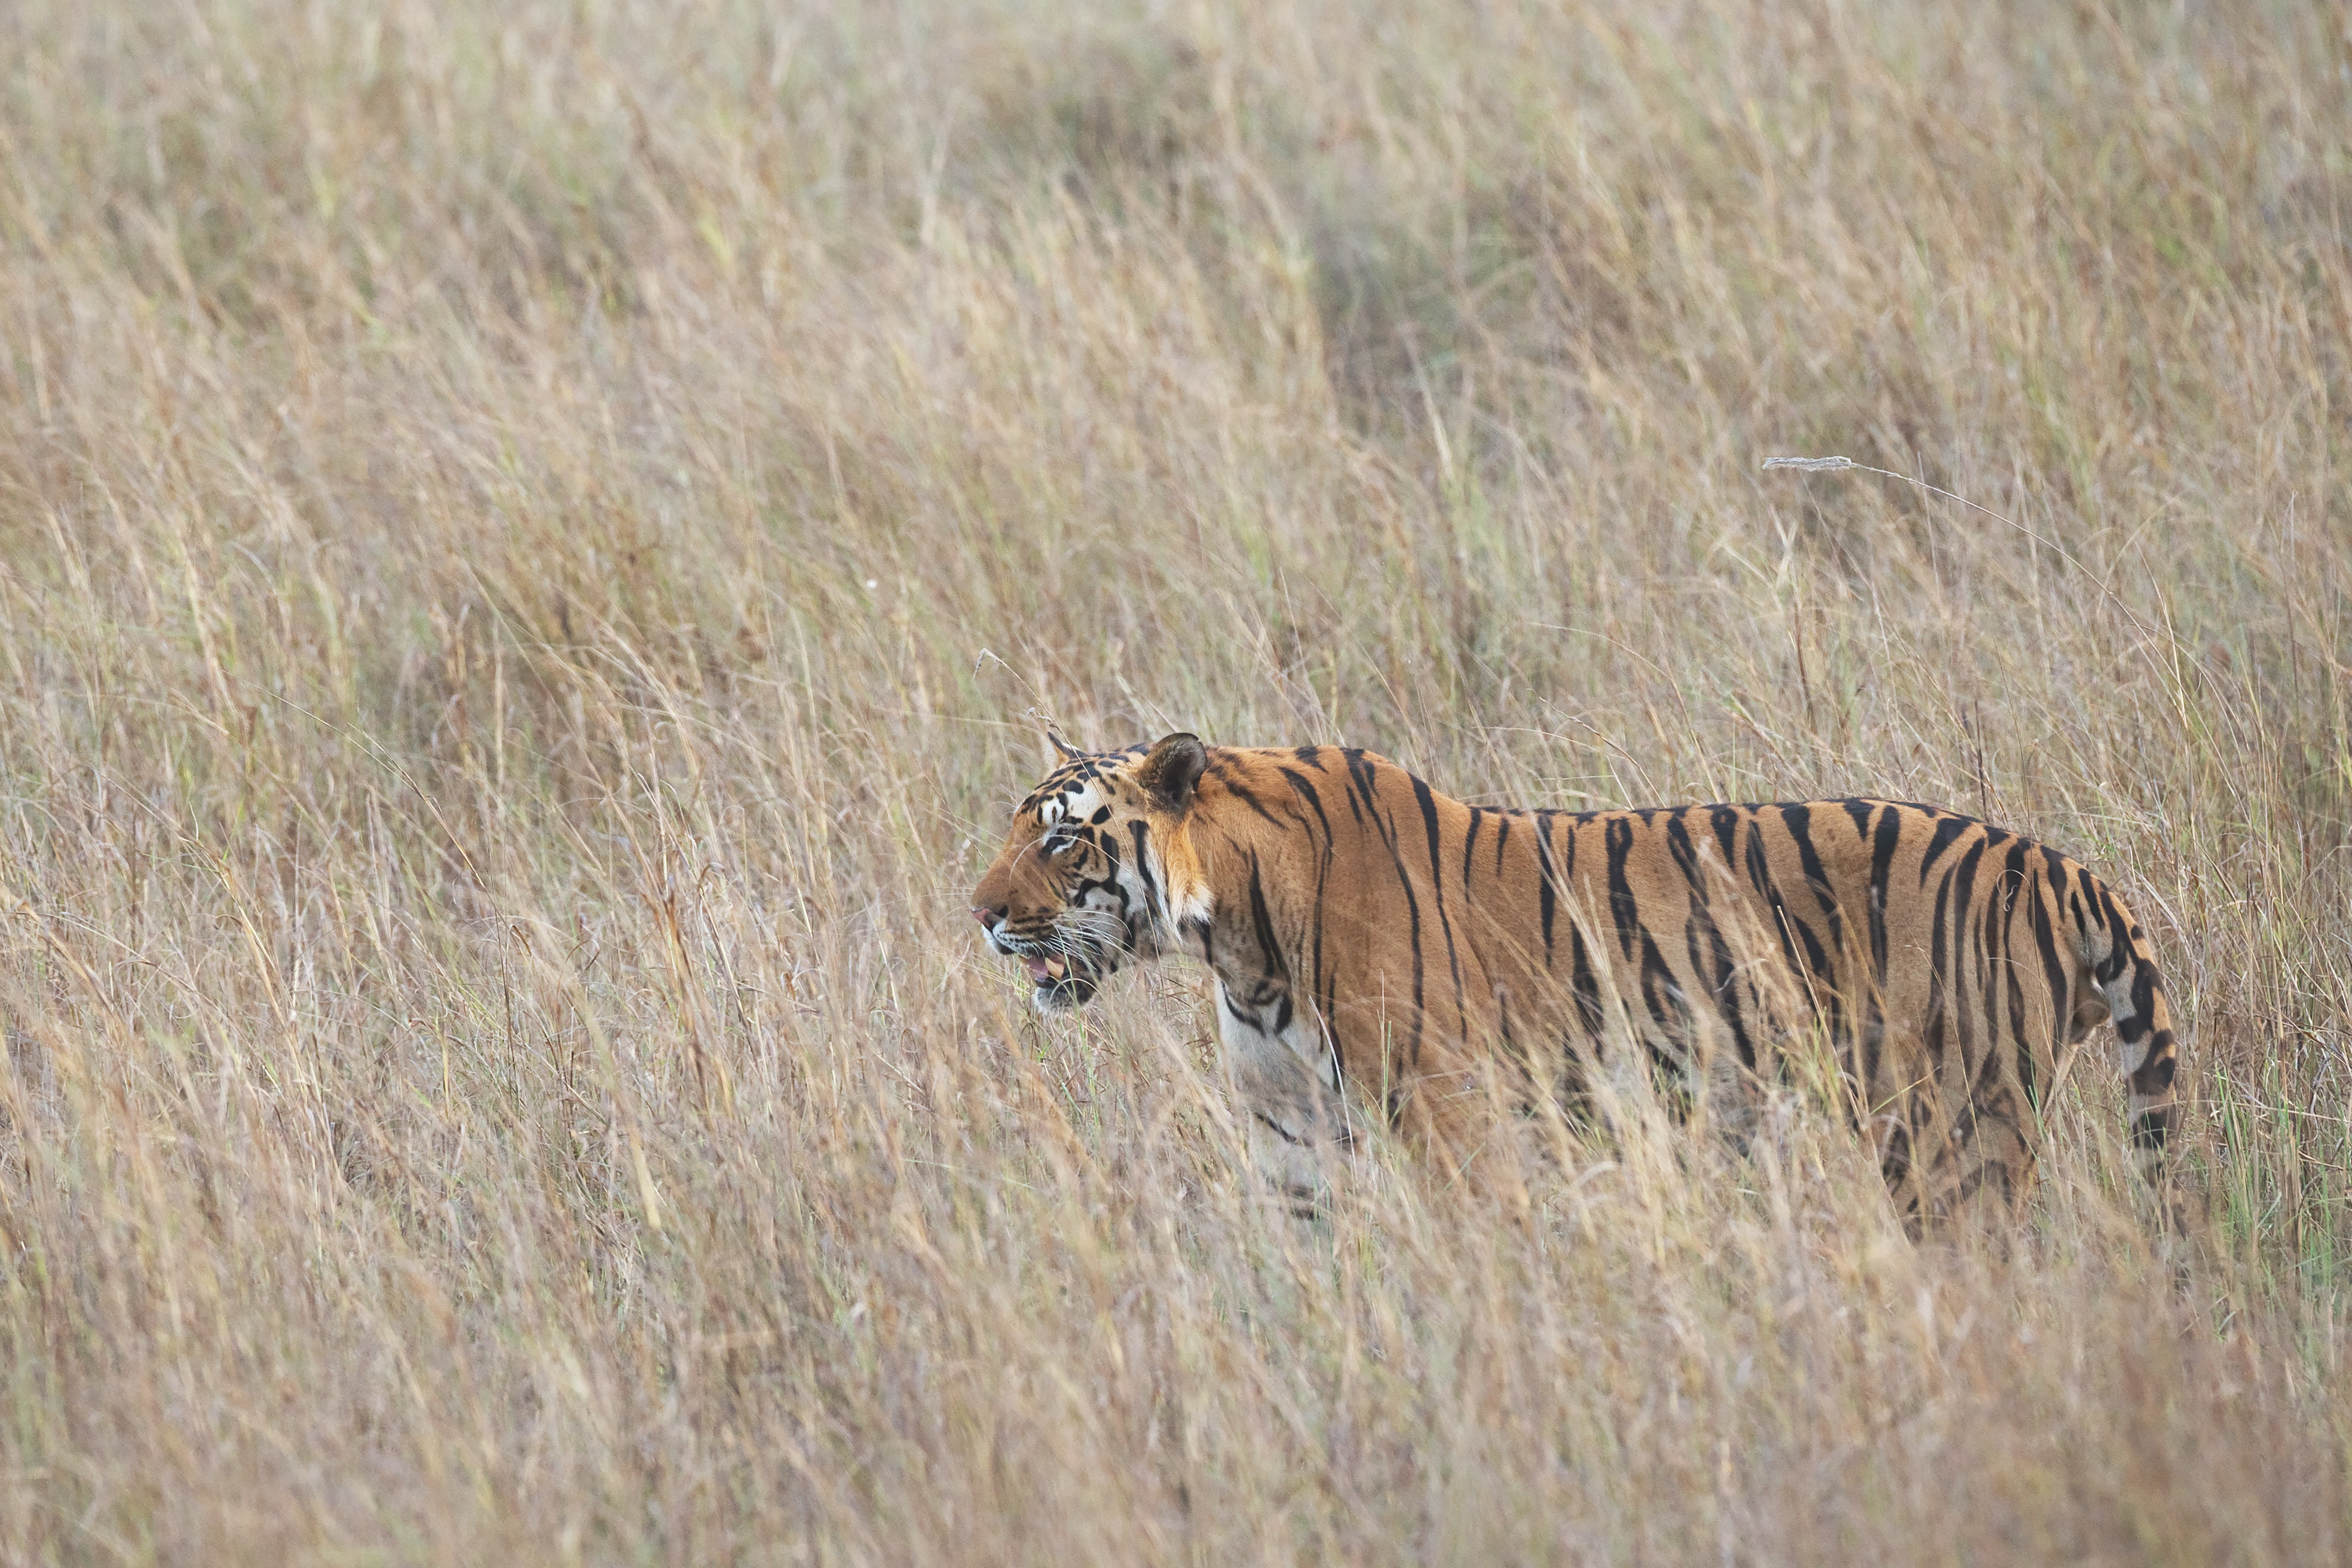 Bengal tiger standing in tall grass during daytime